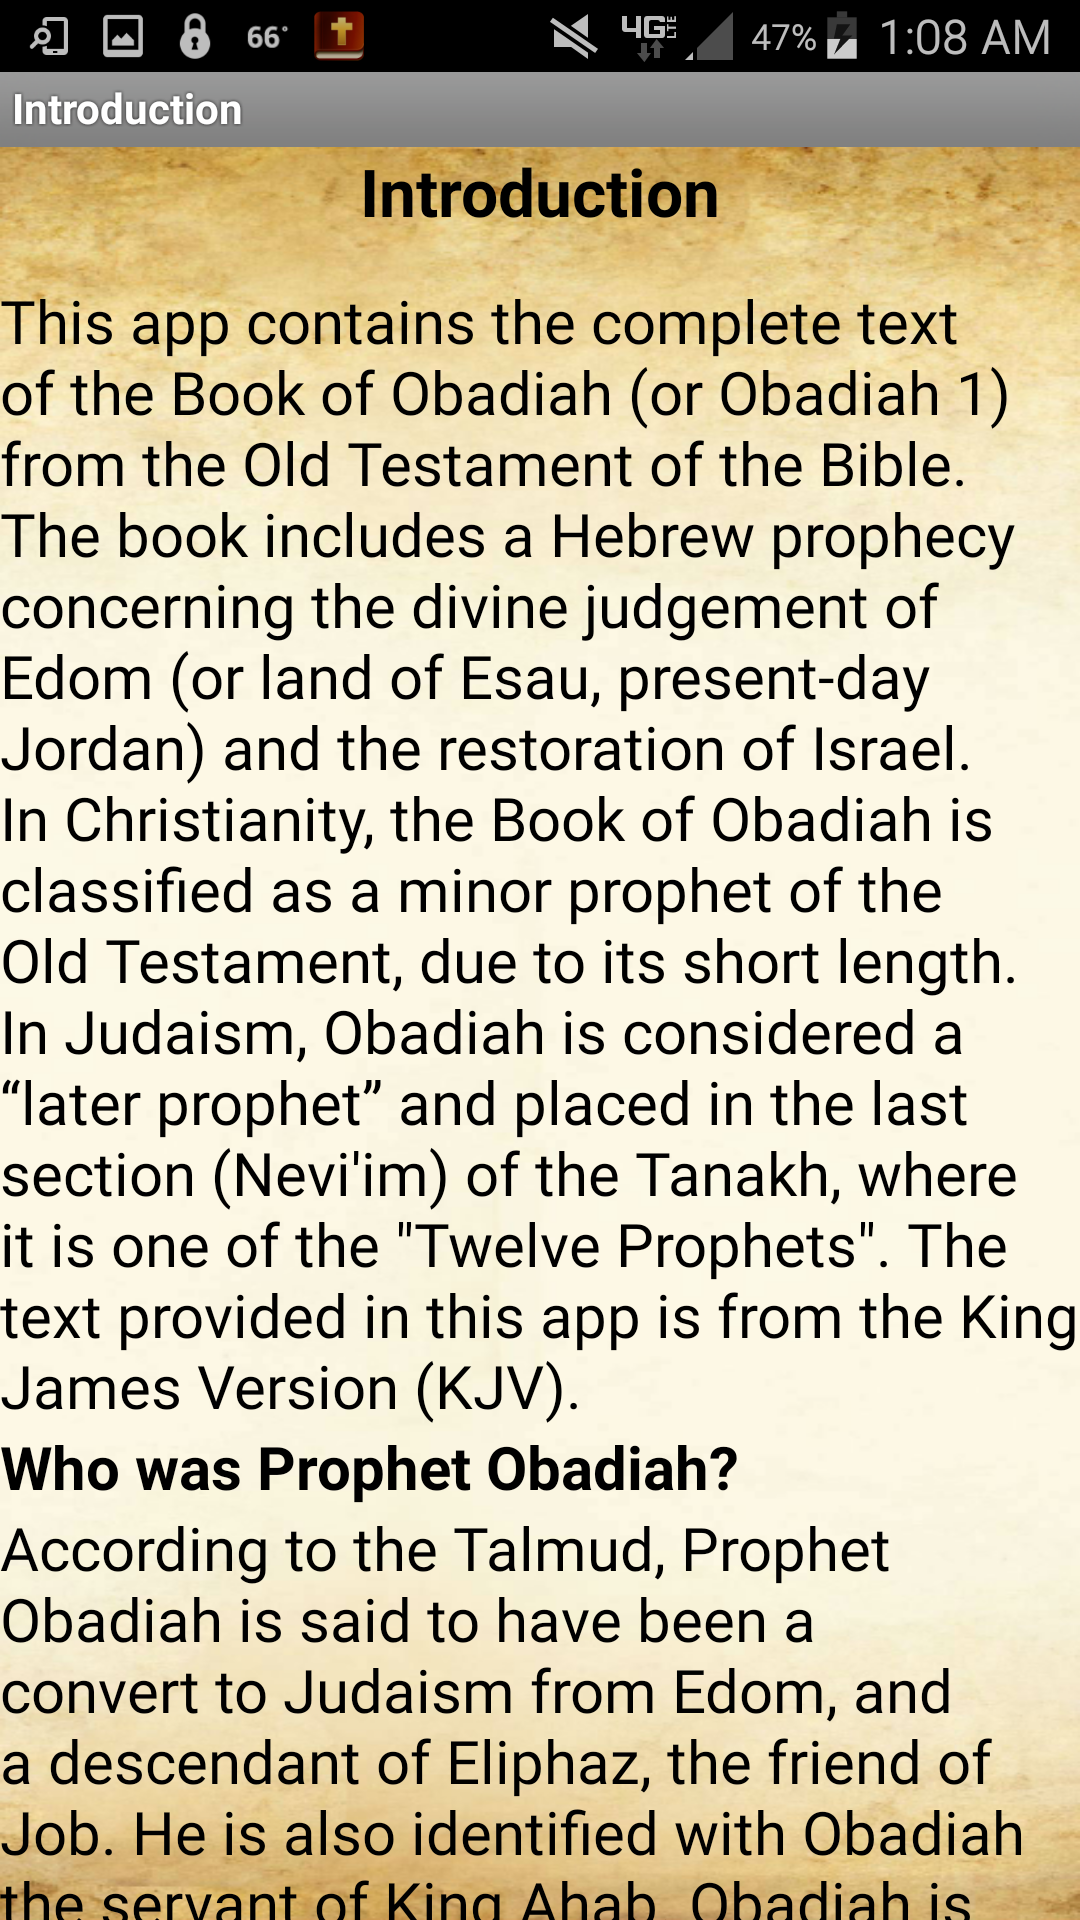 This app contains the complete text of the Book of Obadiah